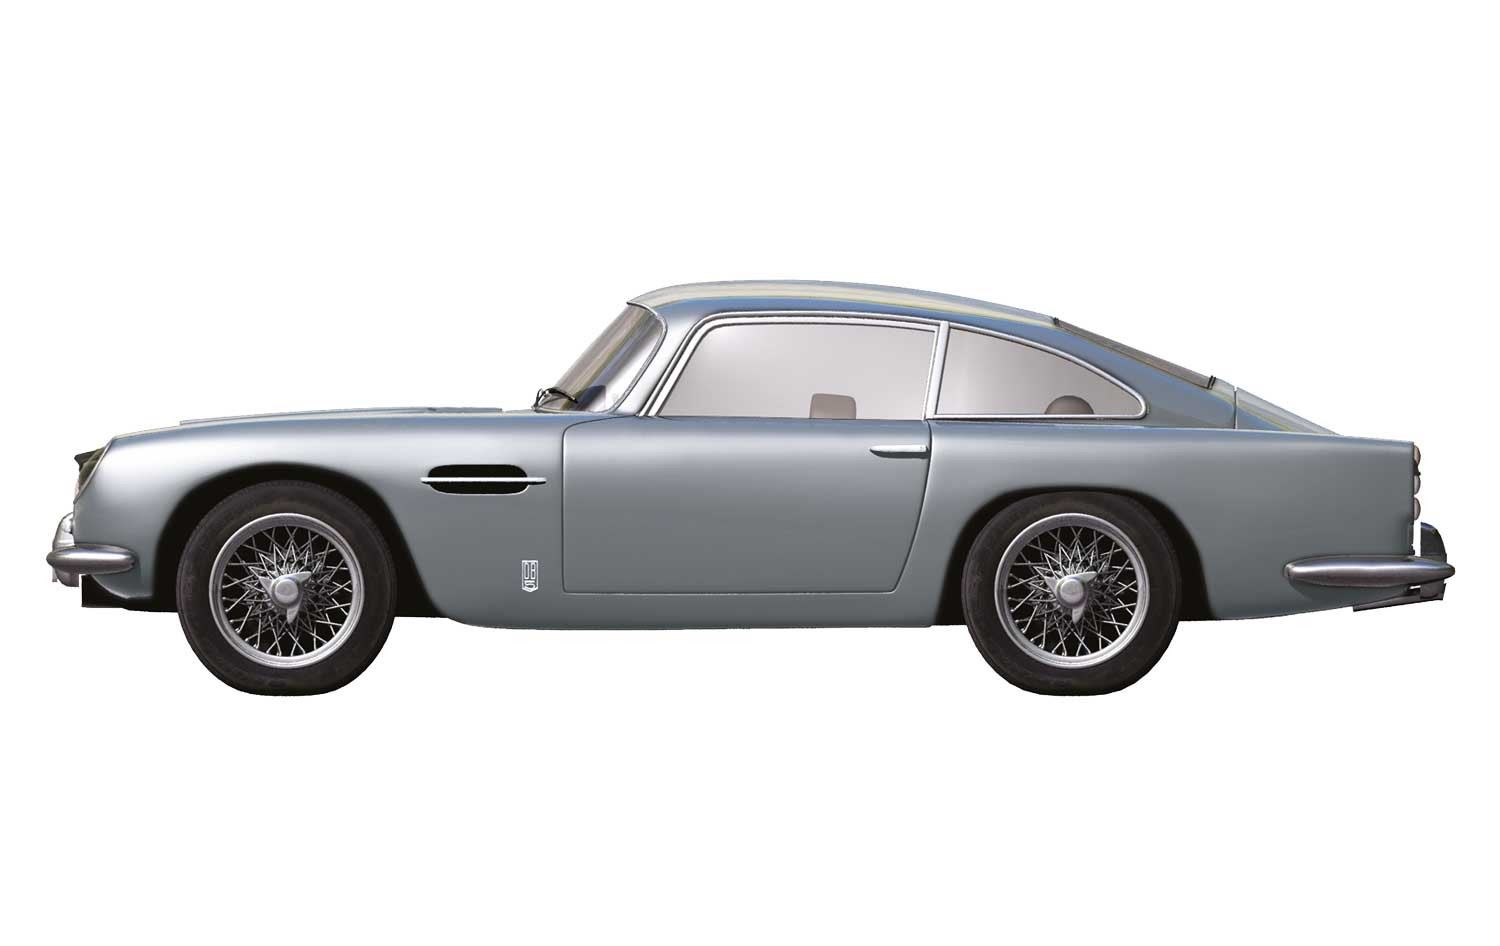 Airfix 1:32 ASTON MARTIN DB5 Model Kit   SILVER   A50089A